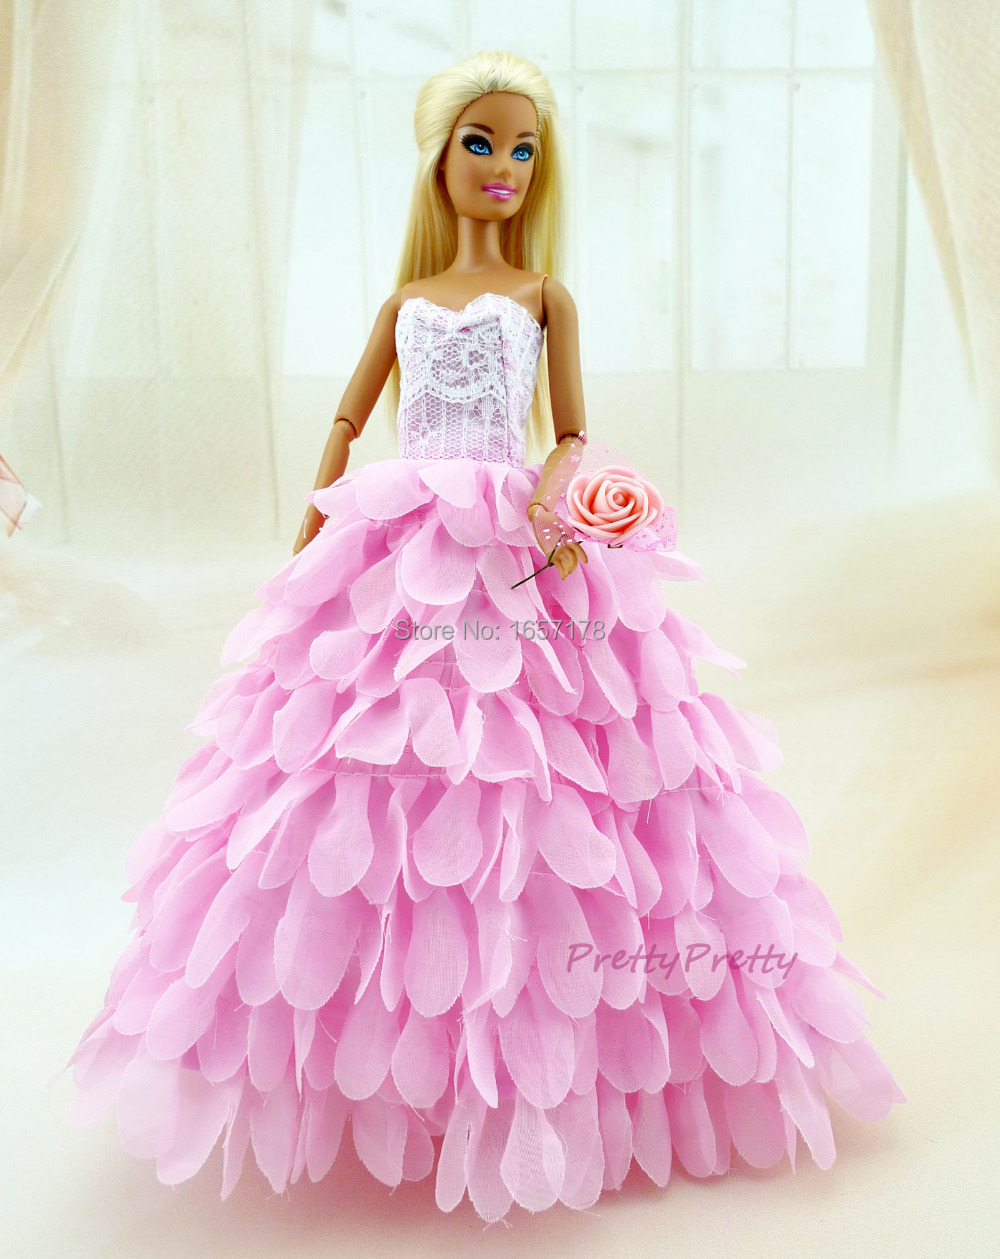 Two Colour New style Handmade Wedding Gown Princess Dress Party ...